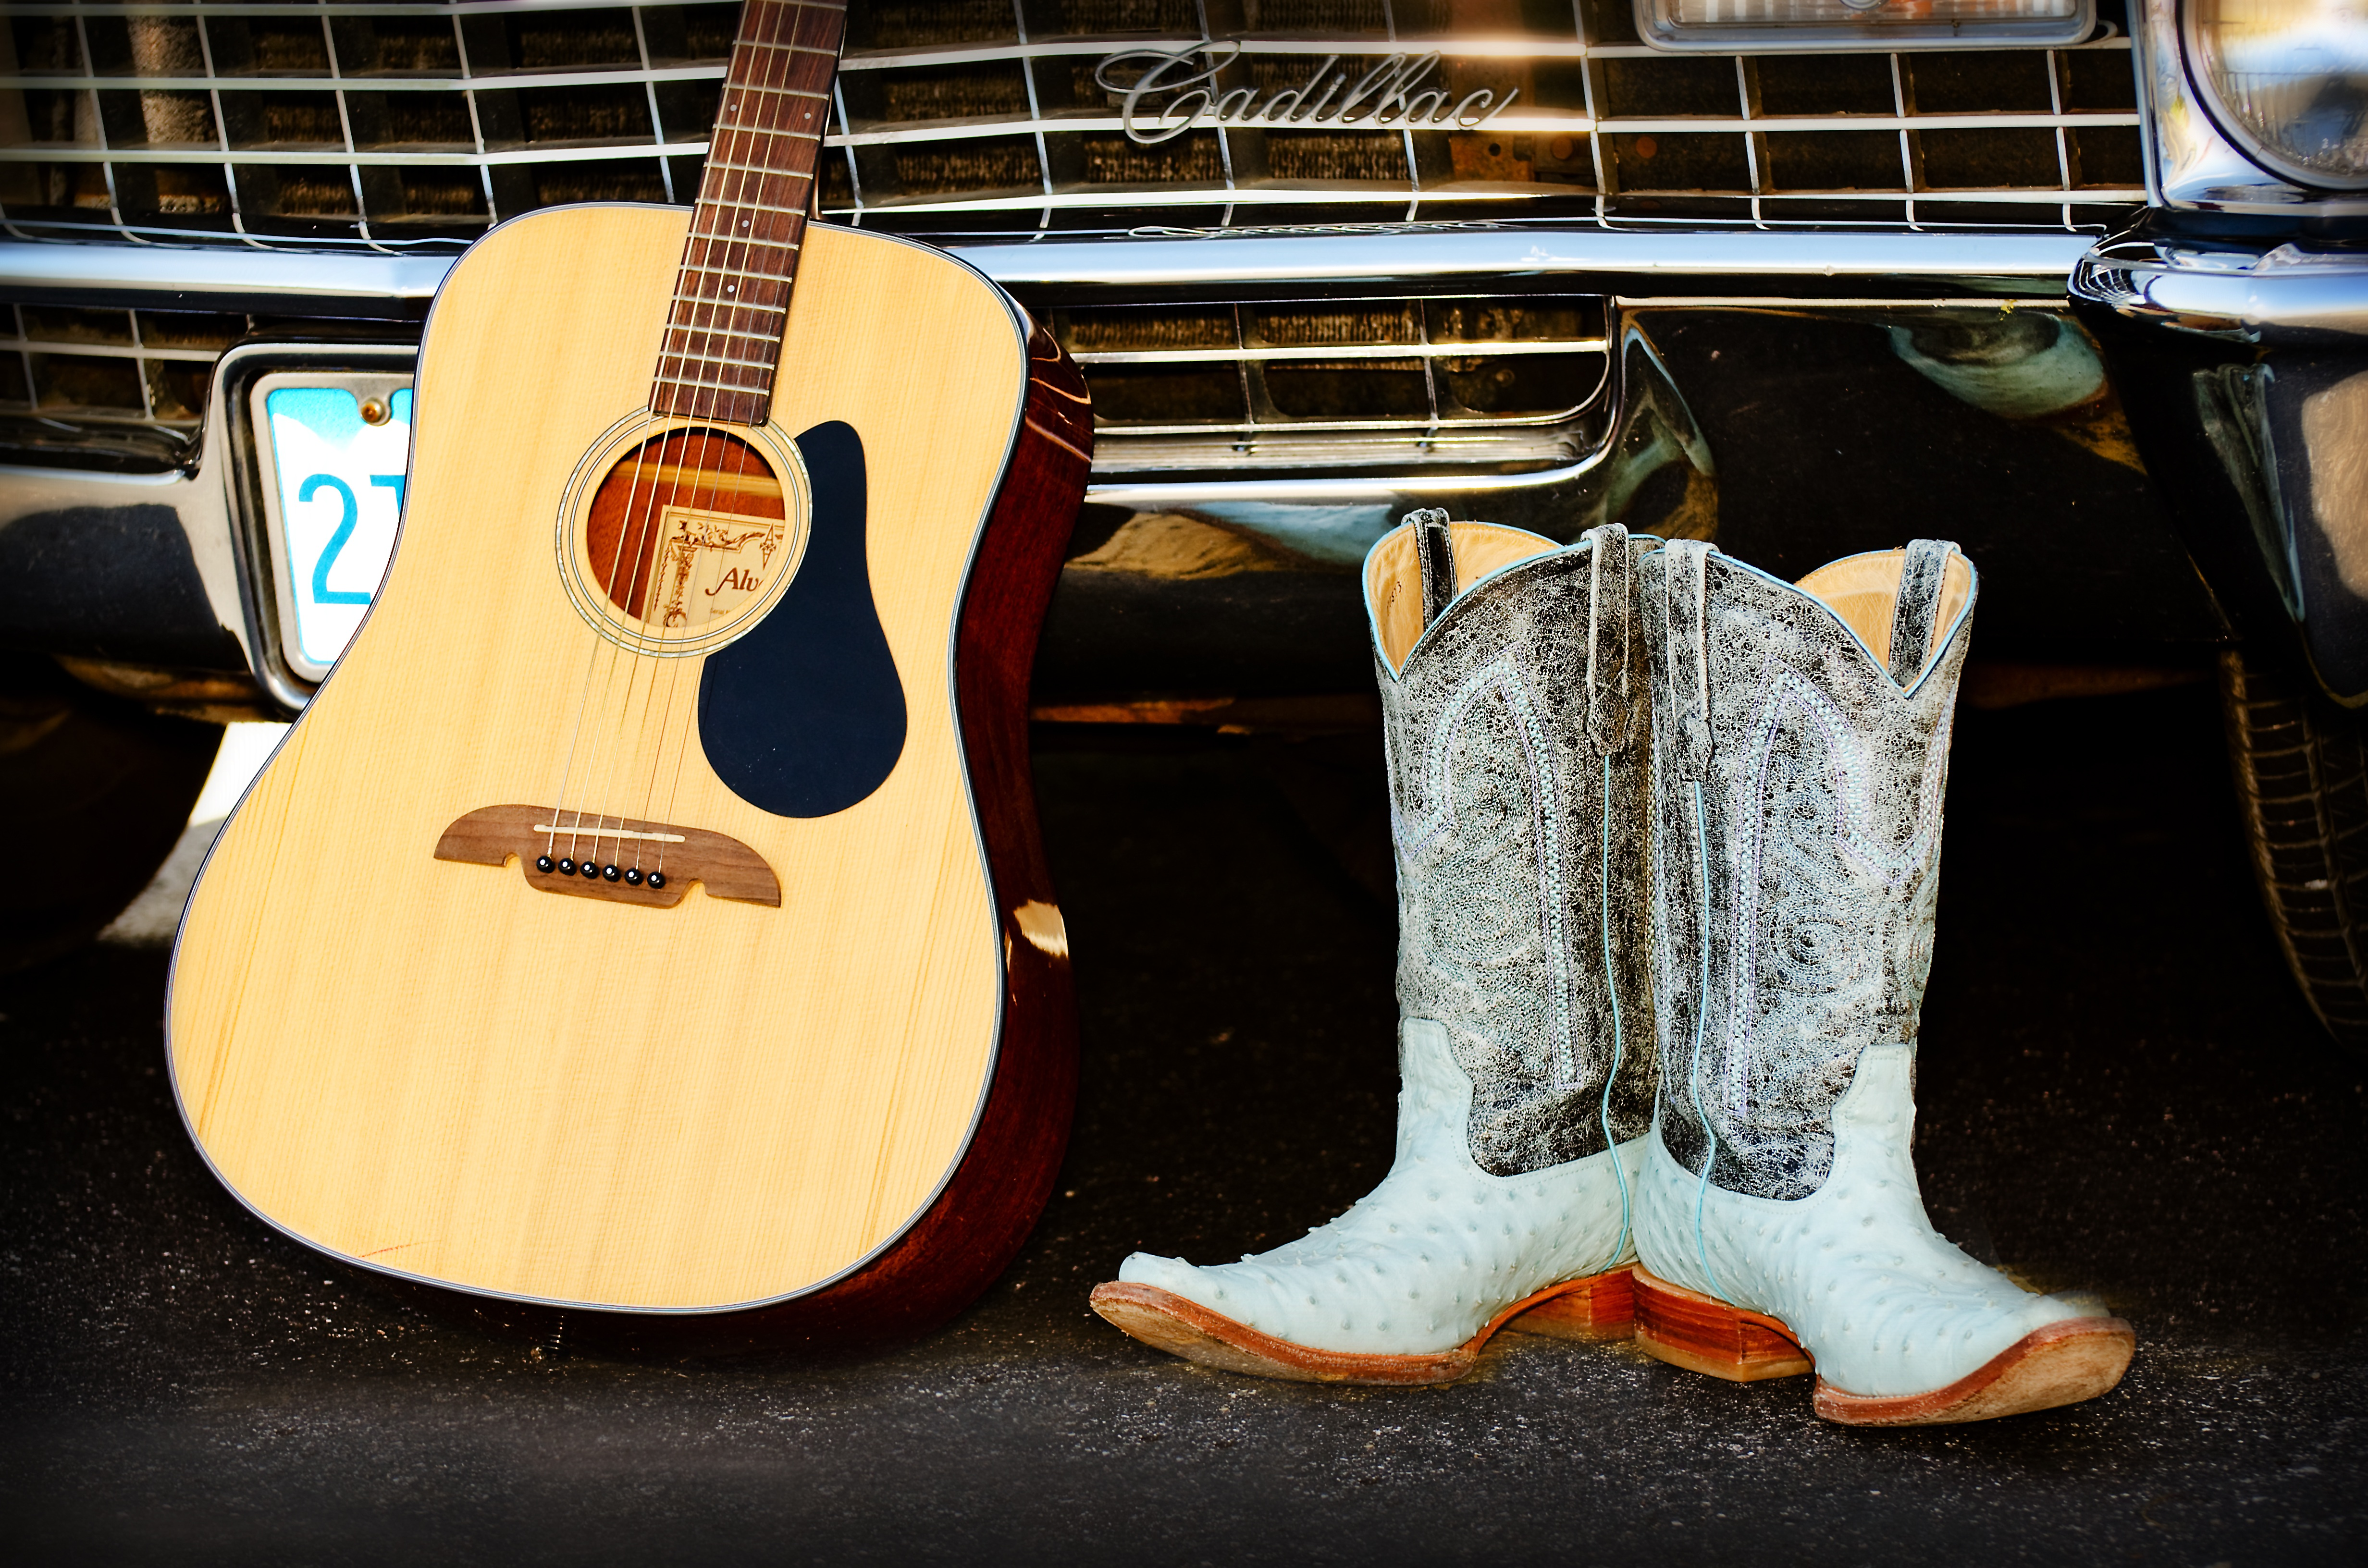 Country Music Cowboy Boots And Guitar 4k Ultra HD Wallpaper